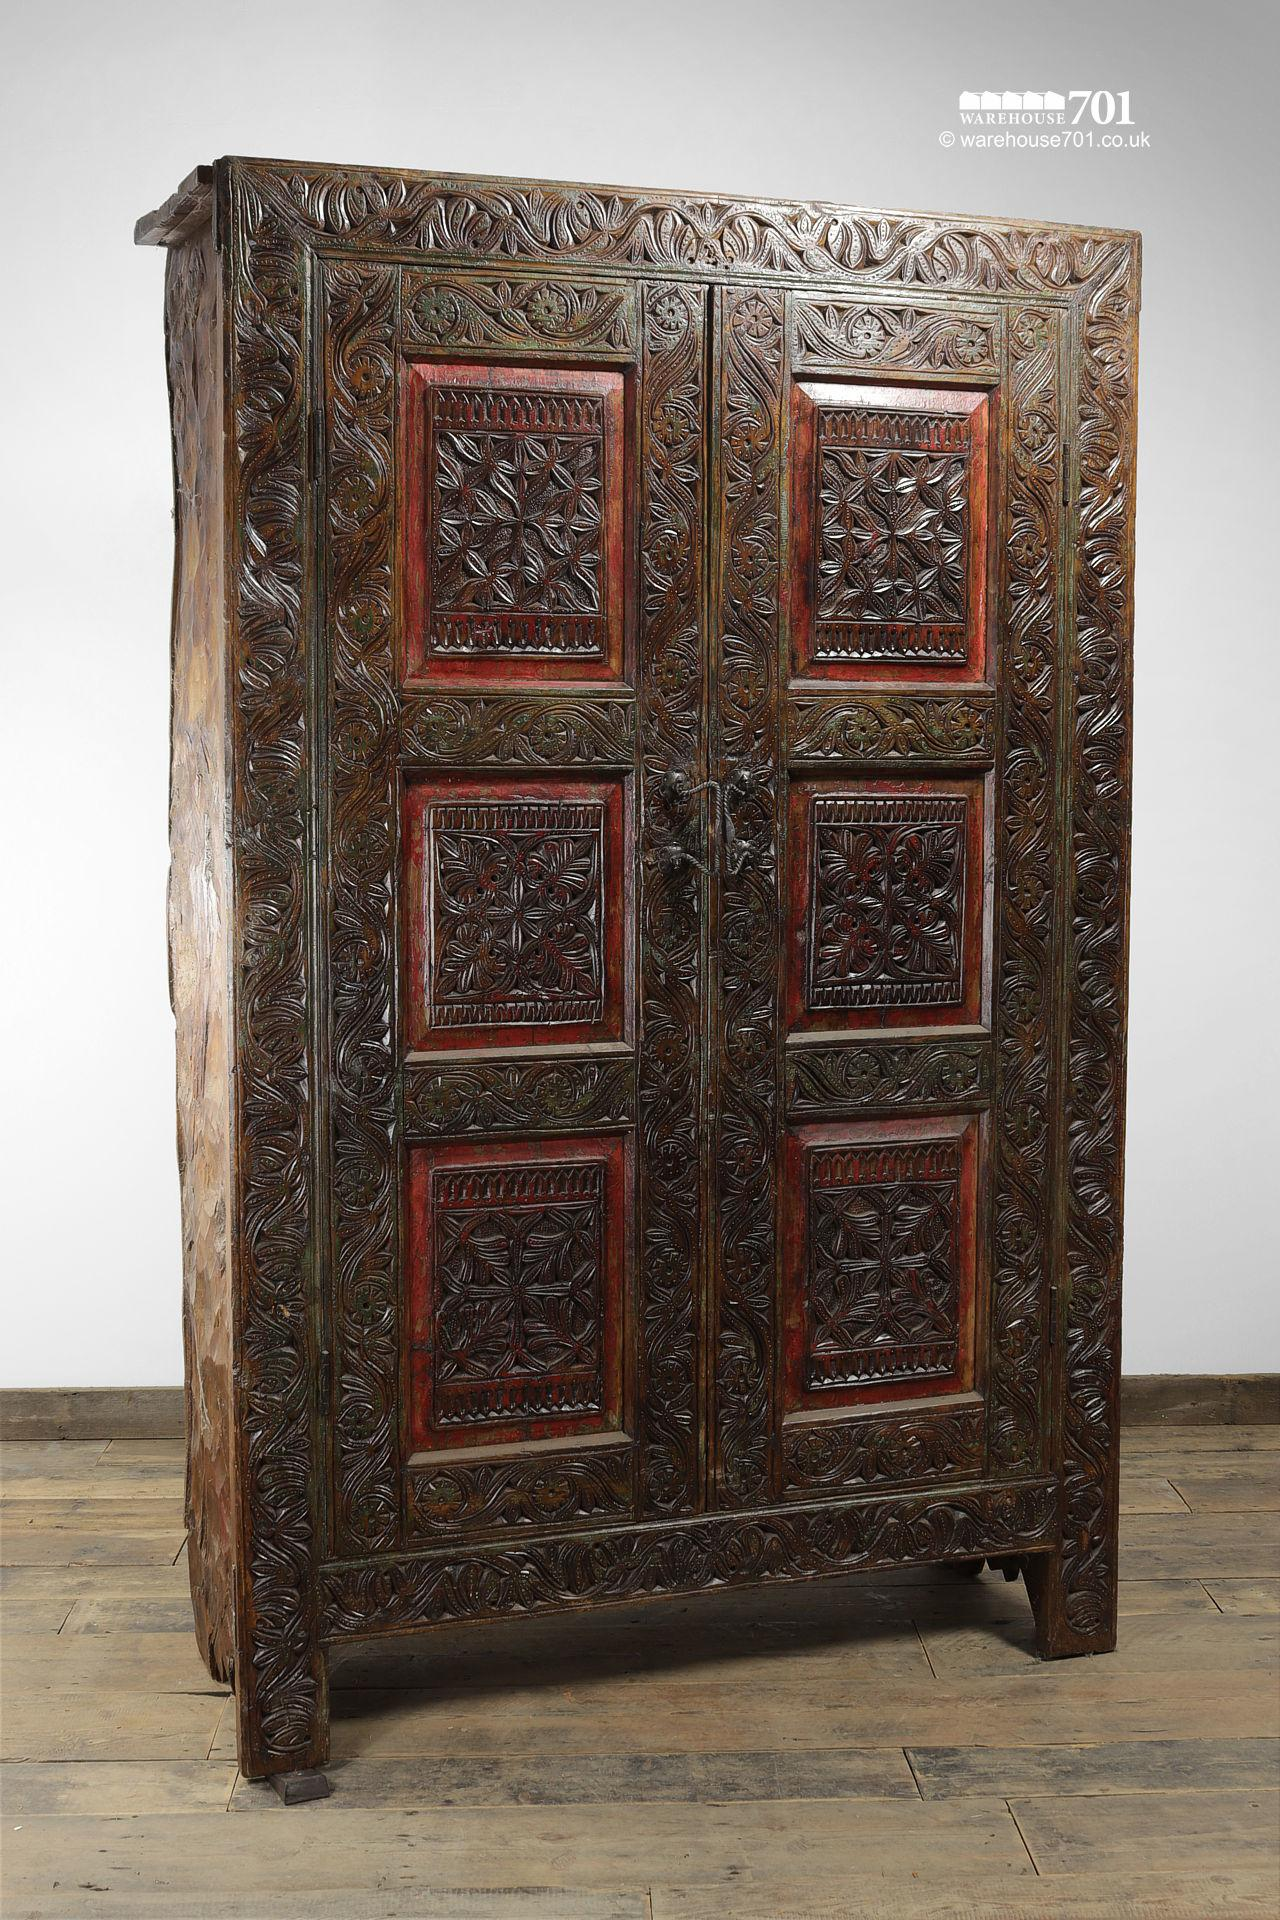 Grand Hand-Carved Wood Armoire or Cupboard